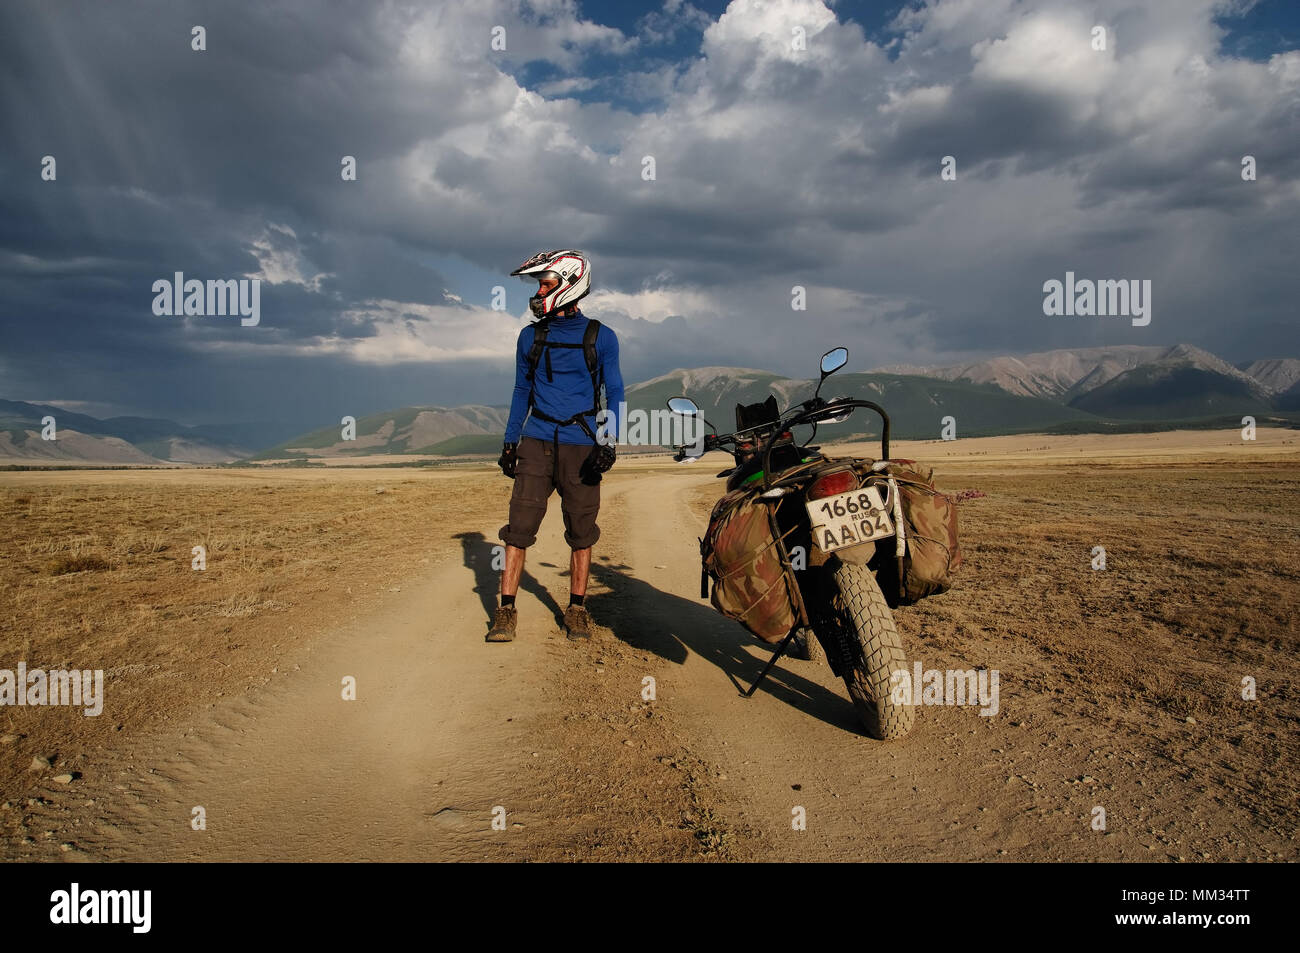 Motorcycle traveler man in helmet with suitcases standing on extreme rocky road in a mountain valley in cloudy weather on the background of endless st Stock Photo